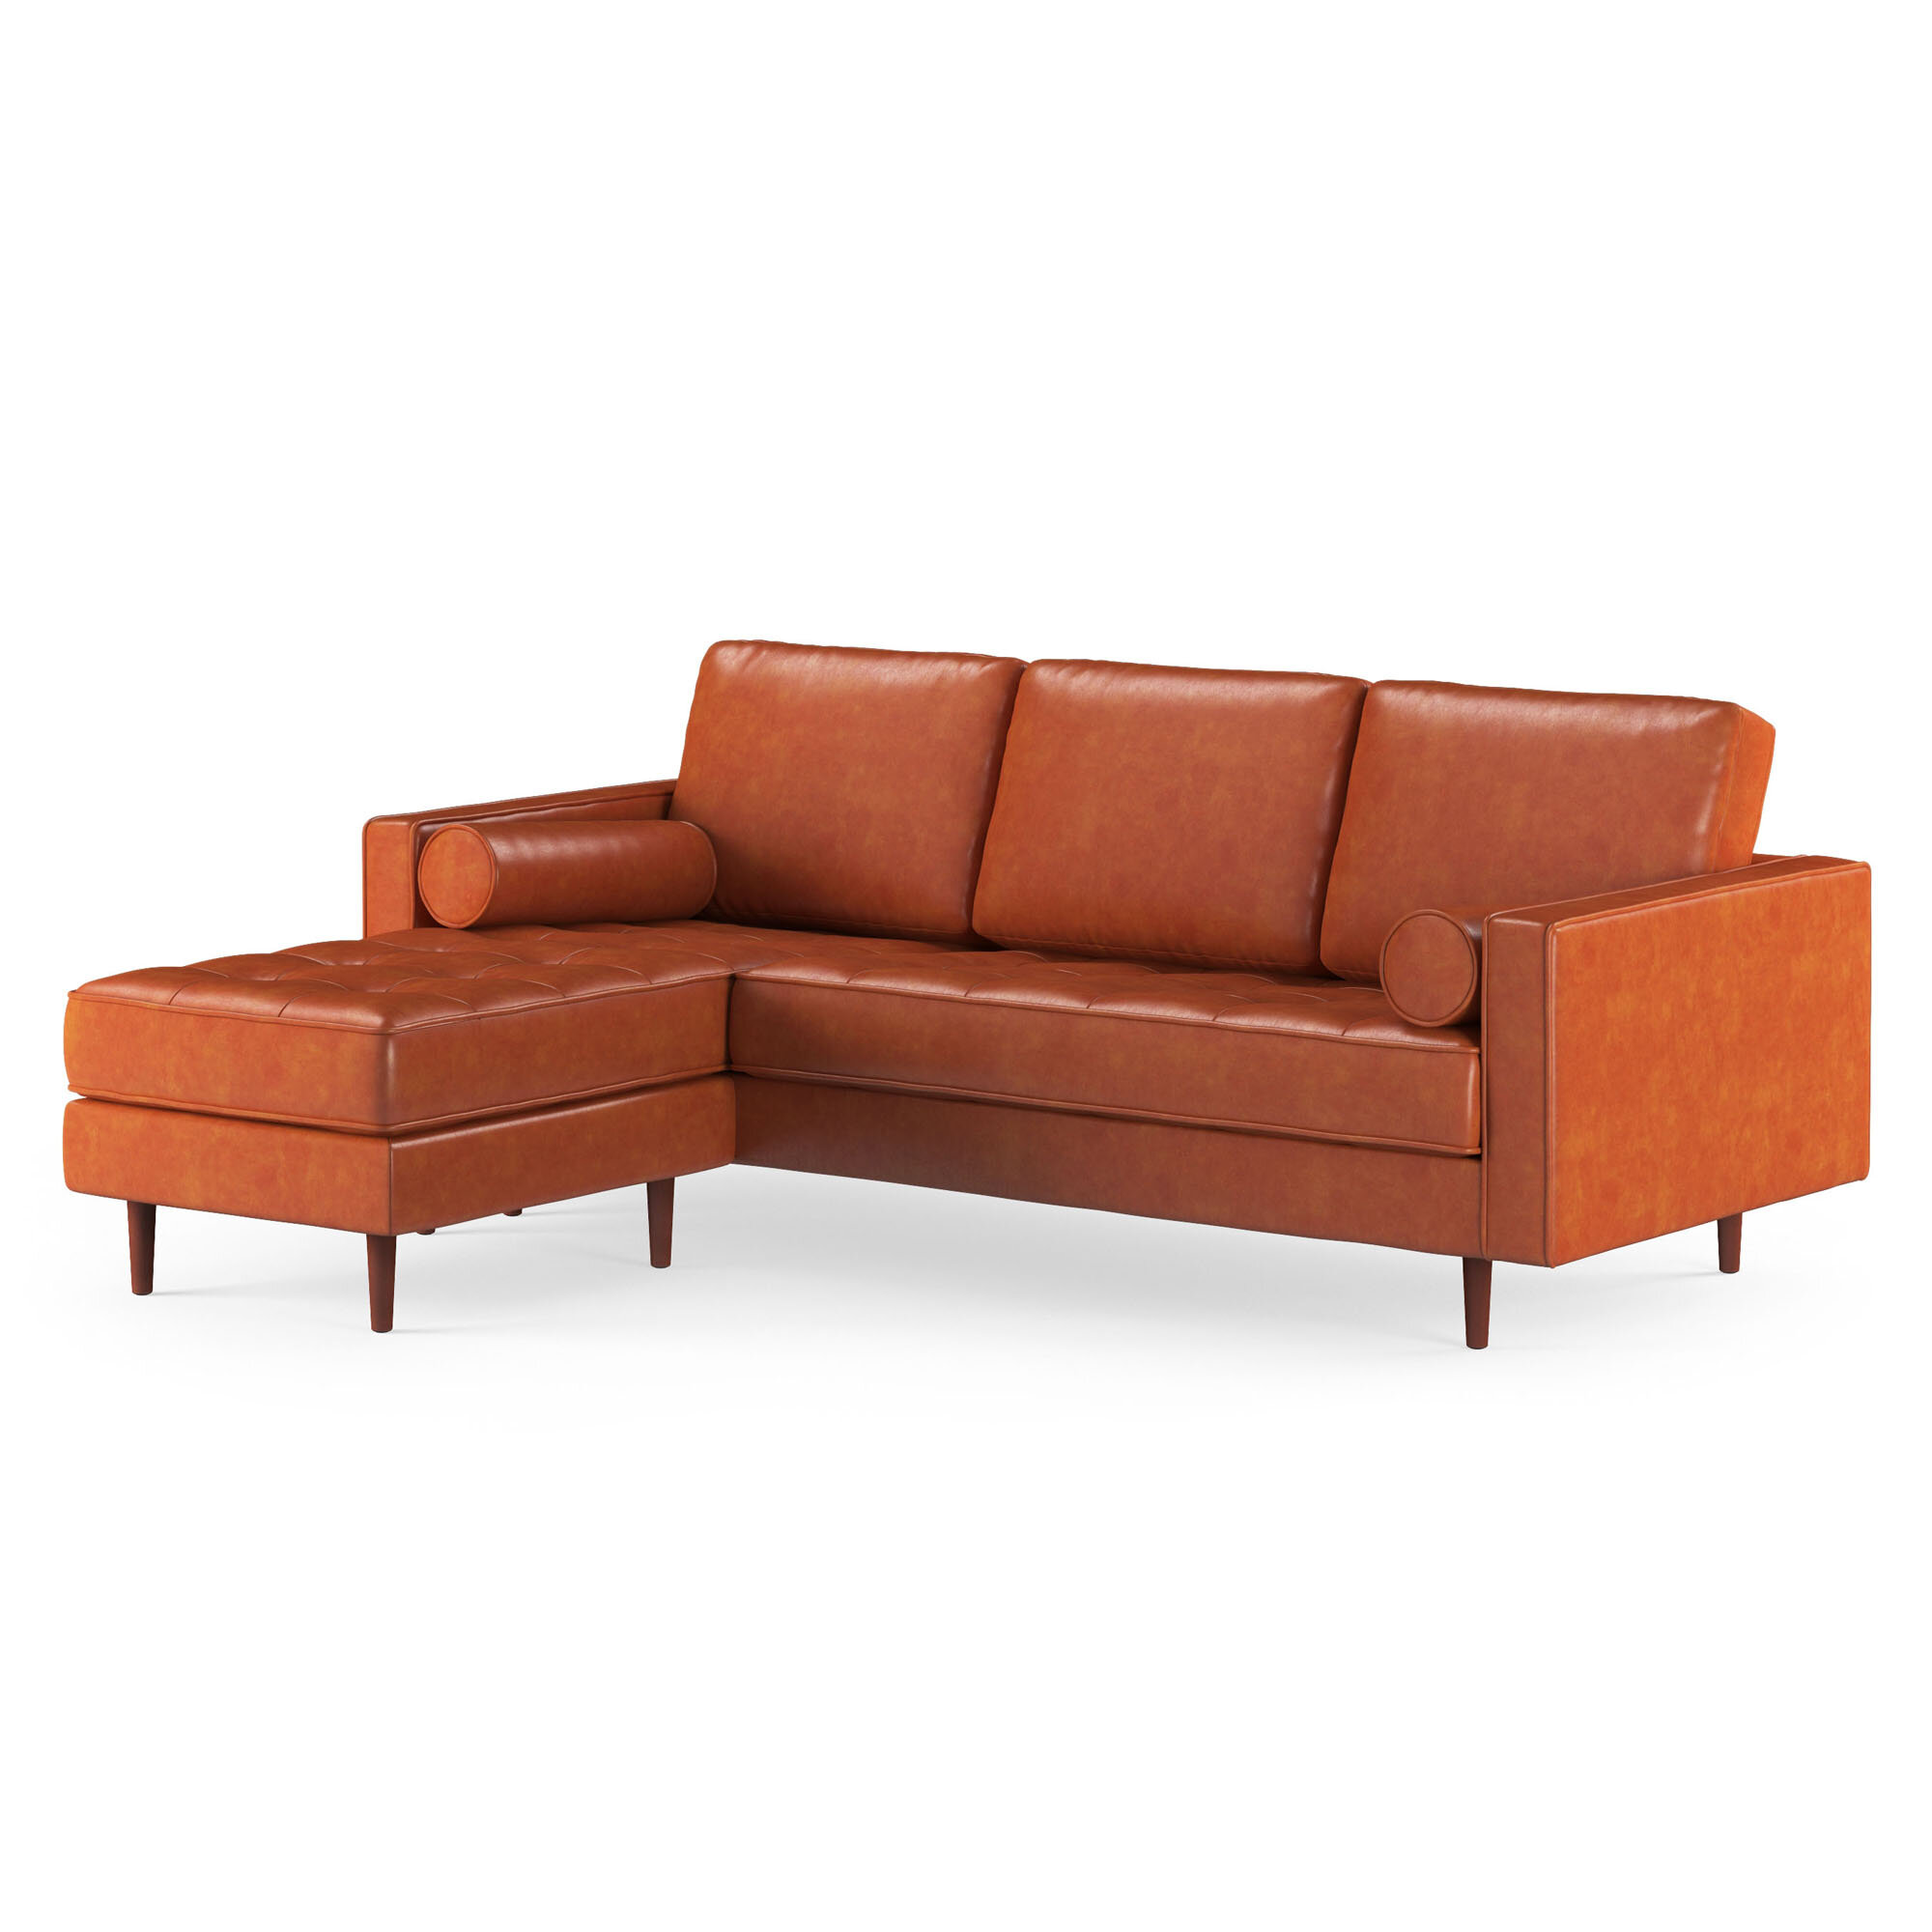 Fantastic Bombay Leather Reversible Modular Sectional With Ottoman Ncnpc Chair Design For Home Ncnpcorg